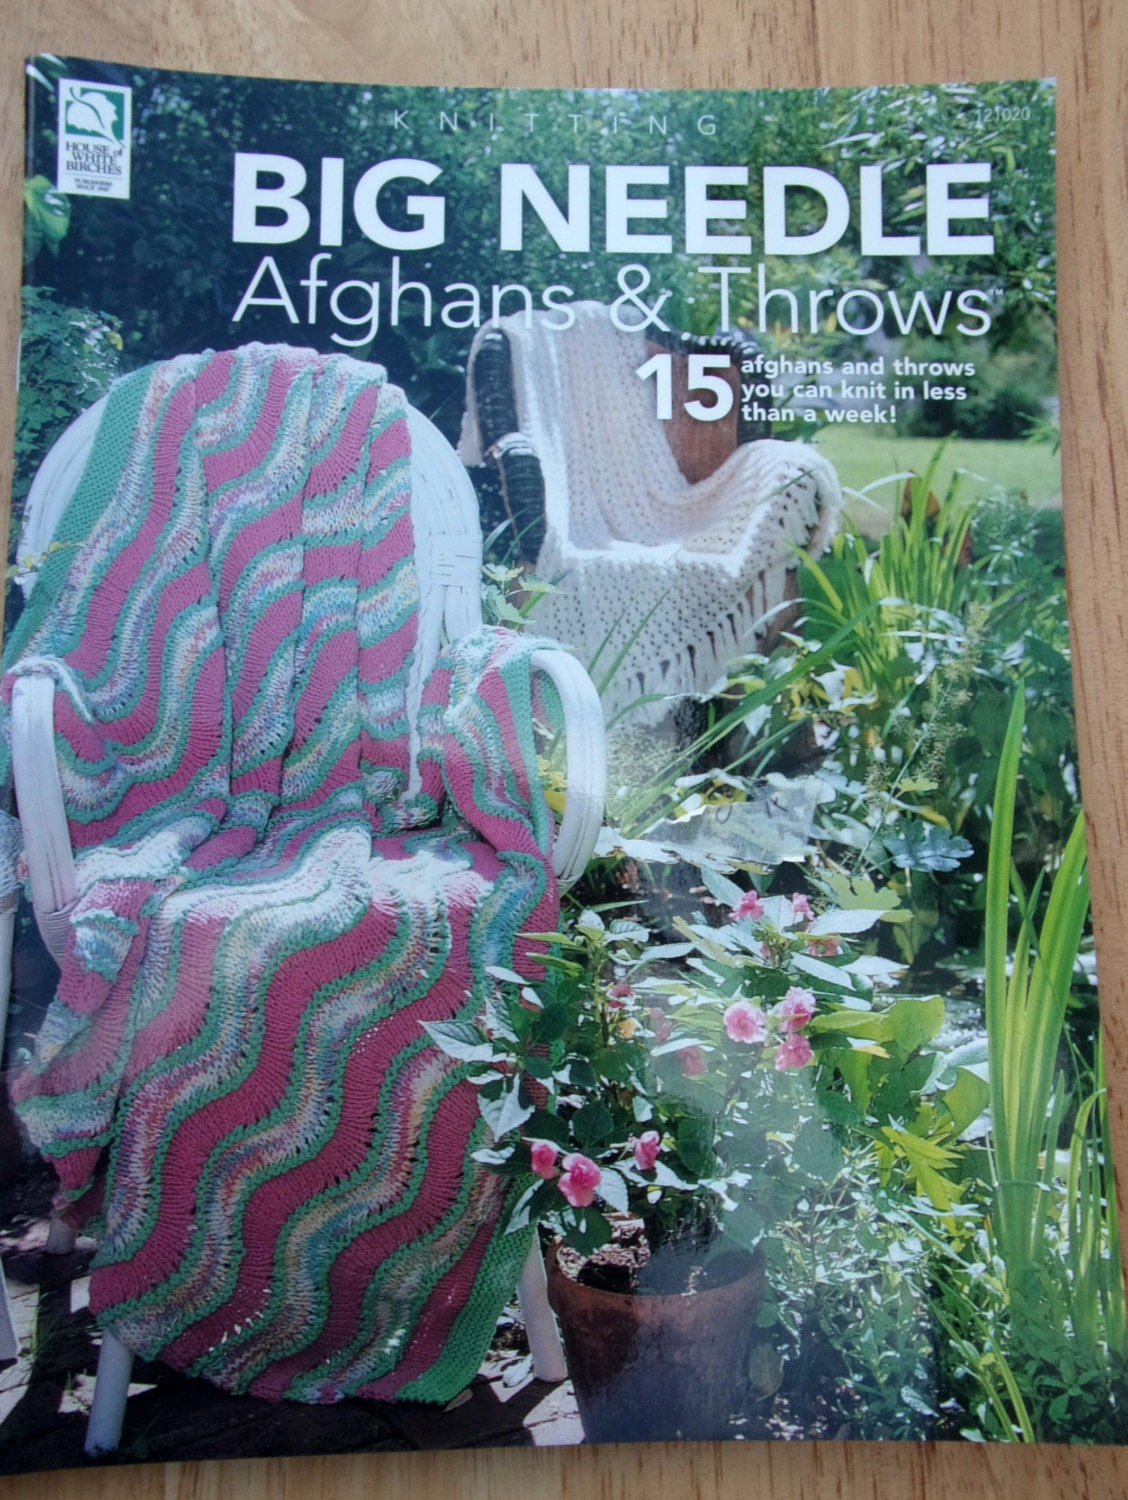 Knitted Afghan Patterns With Big Needles : Big Needle Afghans Throws pattern booklet, fast quick knit knitting blankets,...